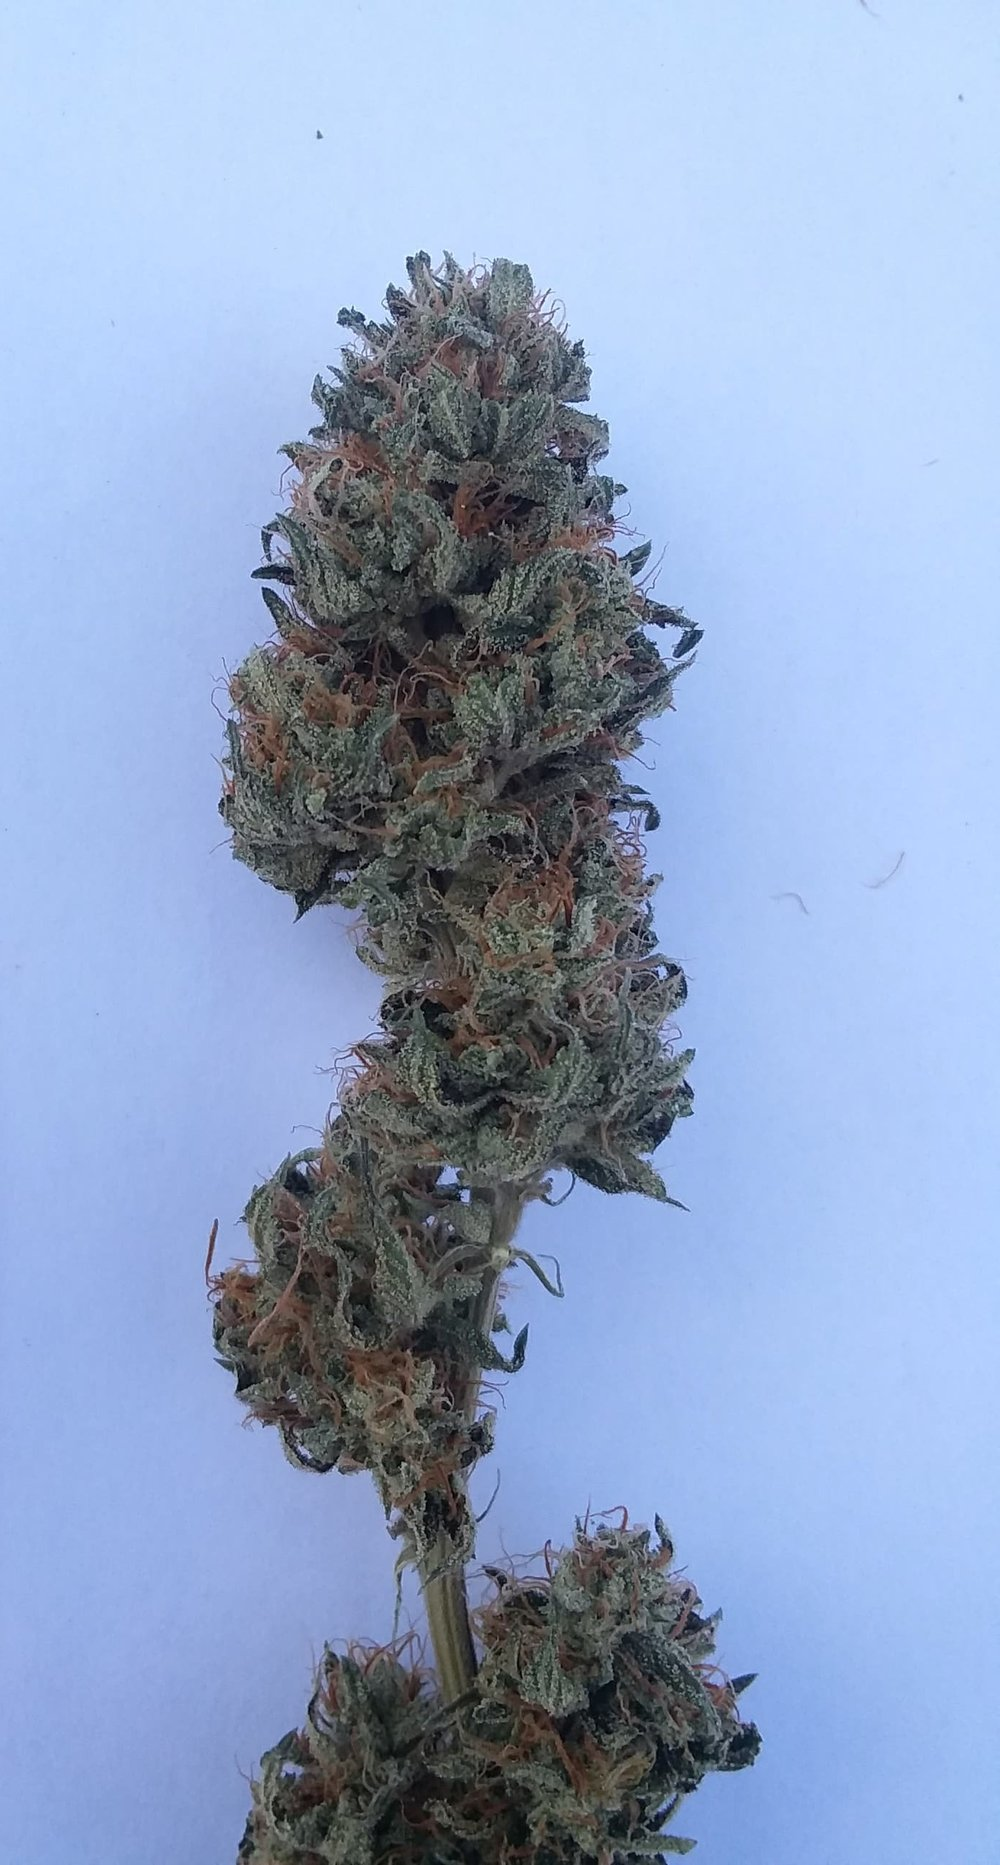 Strawberry Cough - Lineage: Strawberry Fields x Haze Location: Indoor/OutdoorType: Indica DominateFlowering time: 8-9 weeks – 60 daysDescription: bred for the sweet flavor of strawberries and calm euphoric feeling. A personal favorite  Medical Value: Great day smoke, good for Anxiety, PTSD, Depression